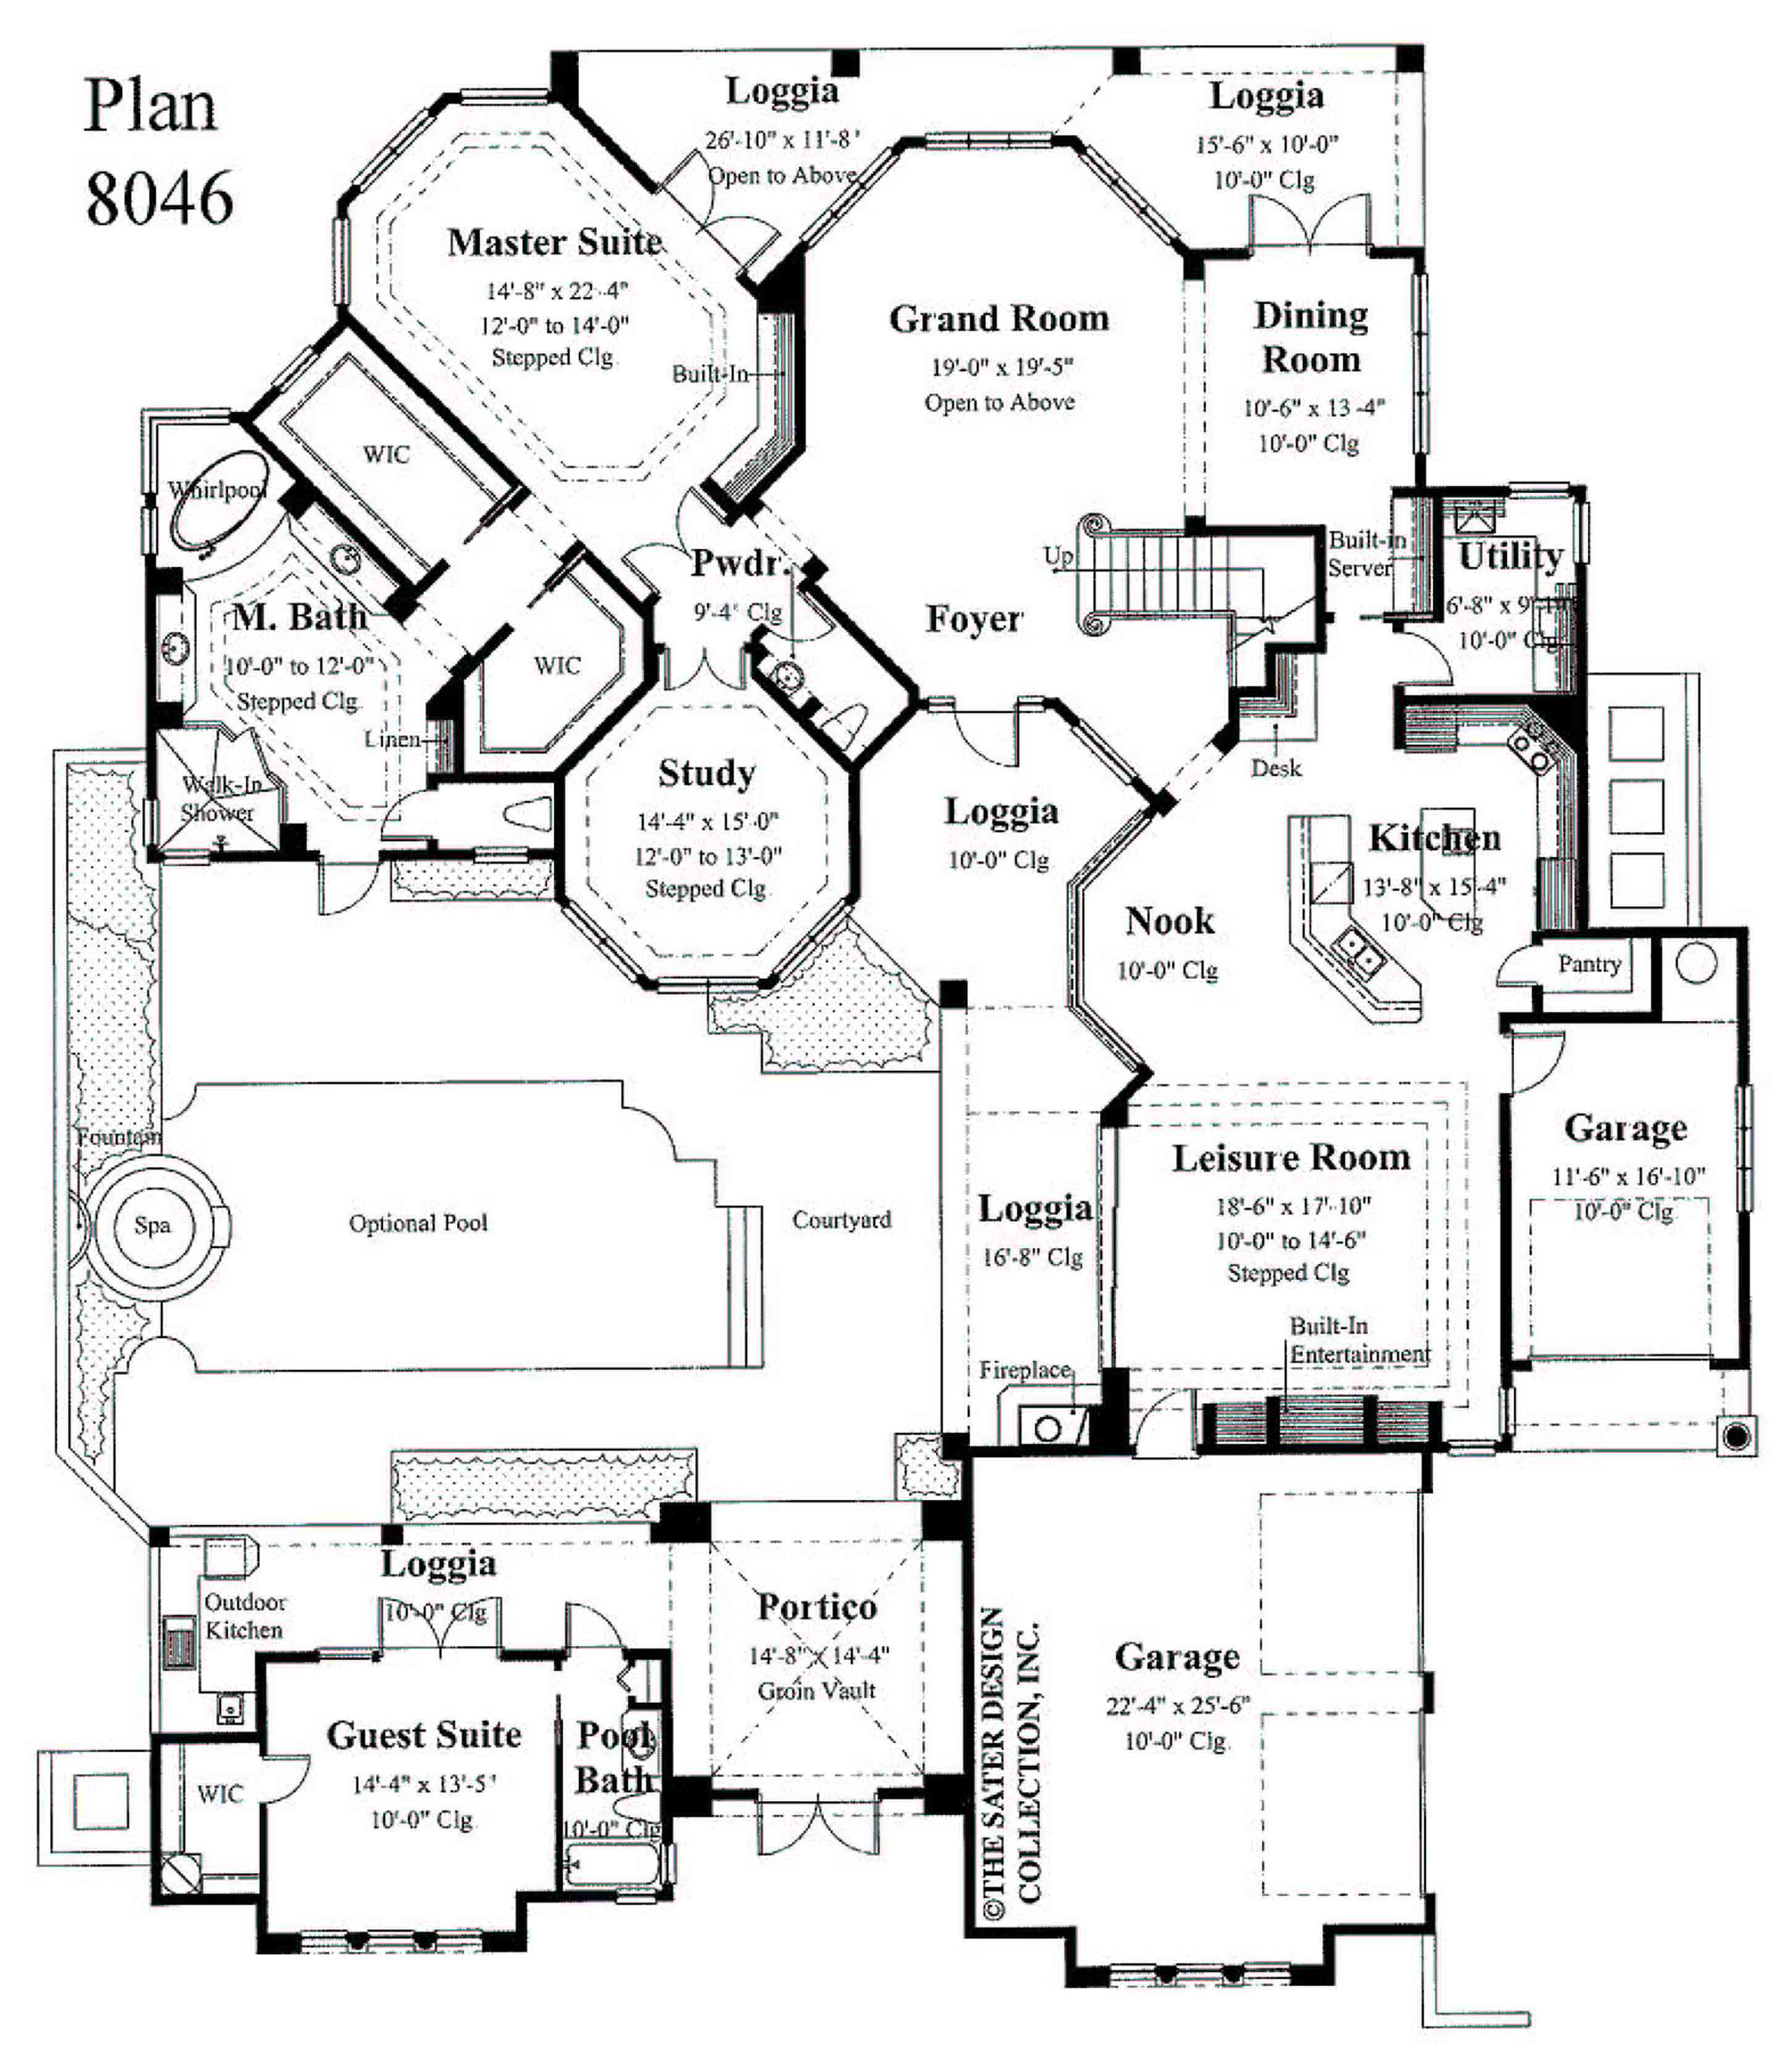 2903x3336 Floor Plans Architecture Images Plan Software Zoomtm Free Maker